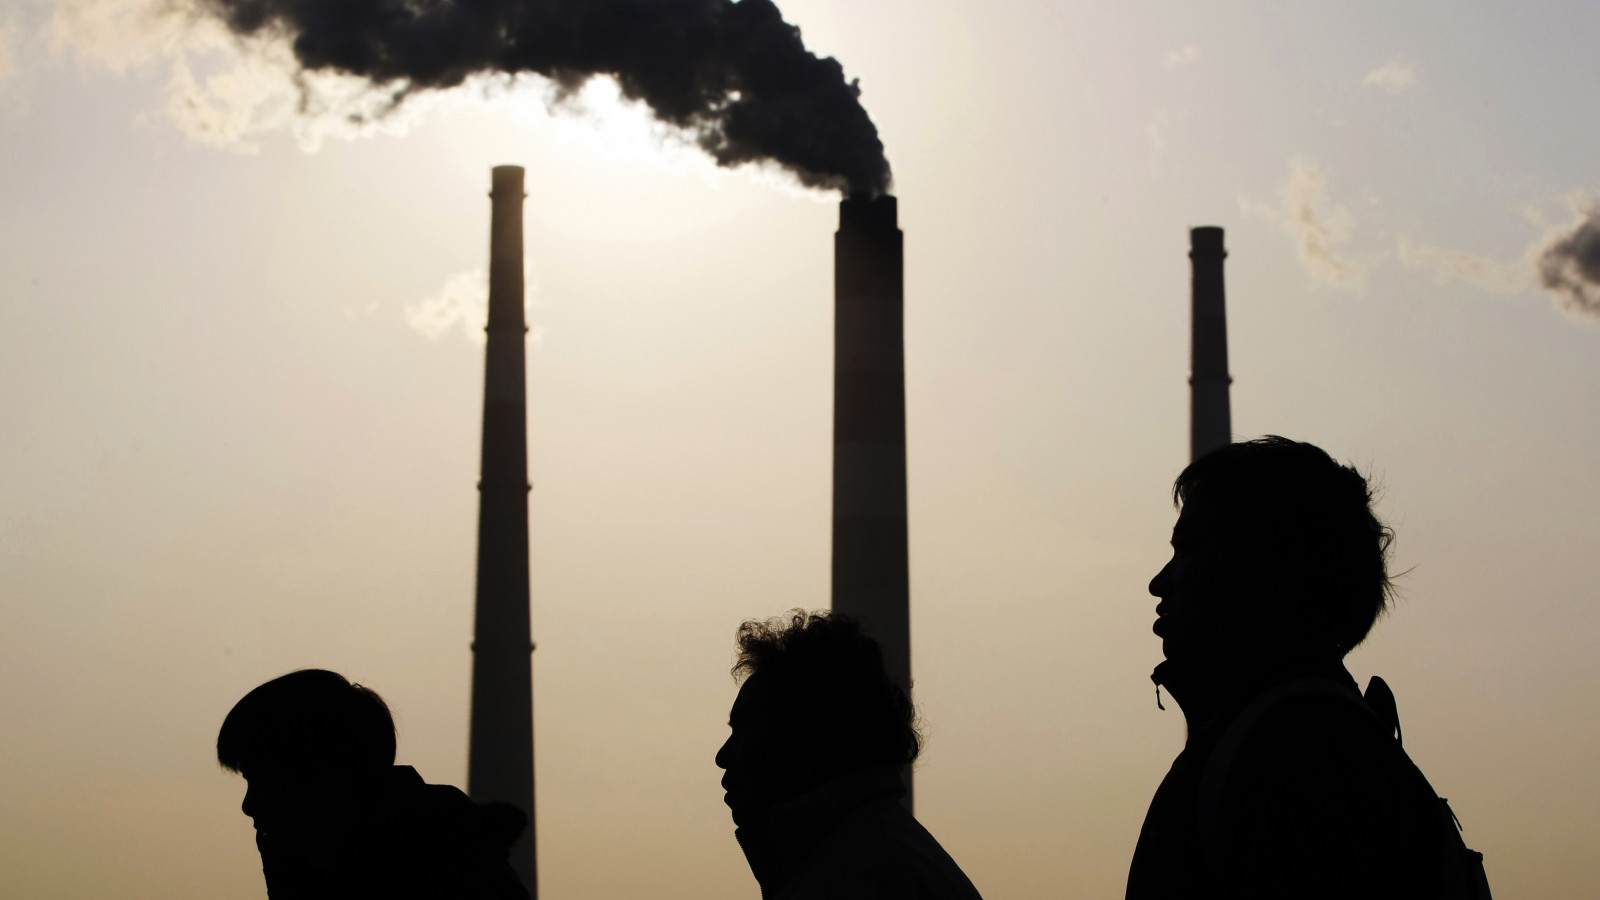 People walk past a power plant in Shanghai December 5, 2009. China's renewable energy strategy through 2050 envisions renewable energy making up one-third of its energy consumption by then, the China Daily said, as the upcoming Copenhagen conference on climate change highlights the world's dependence on fossil fuels. Picture taken December 5, 2009. REUTERS/Aly Song (CHINA BUSINESS ENERGY) - RTXRJ4A